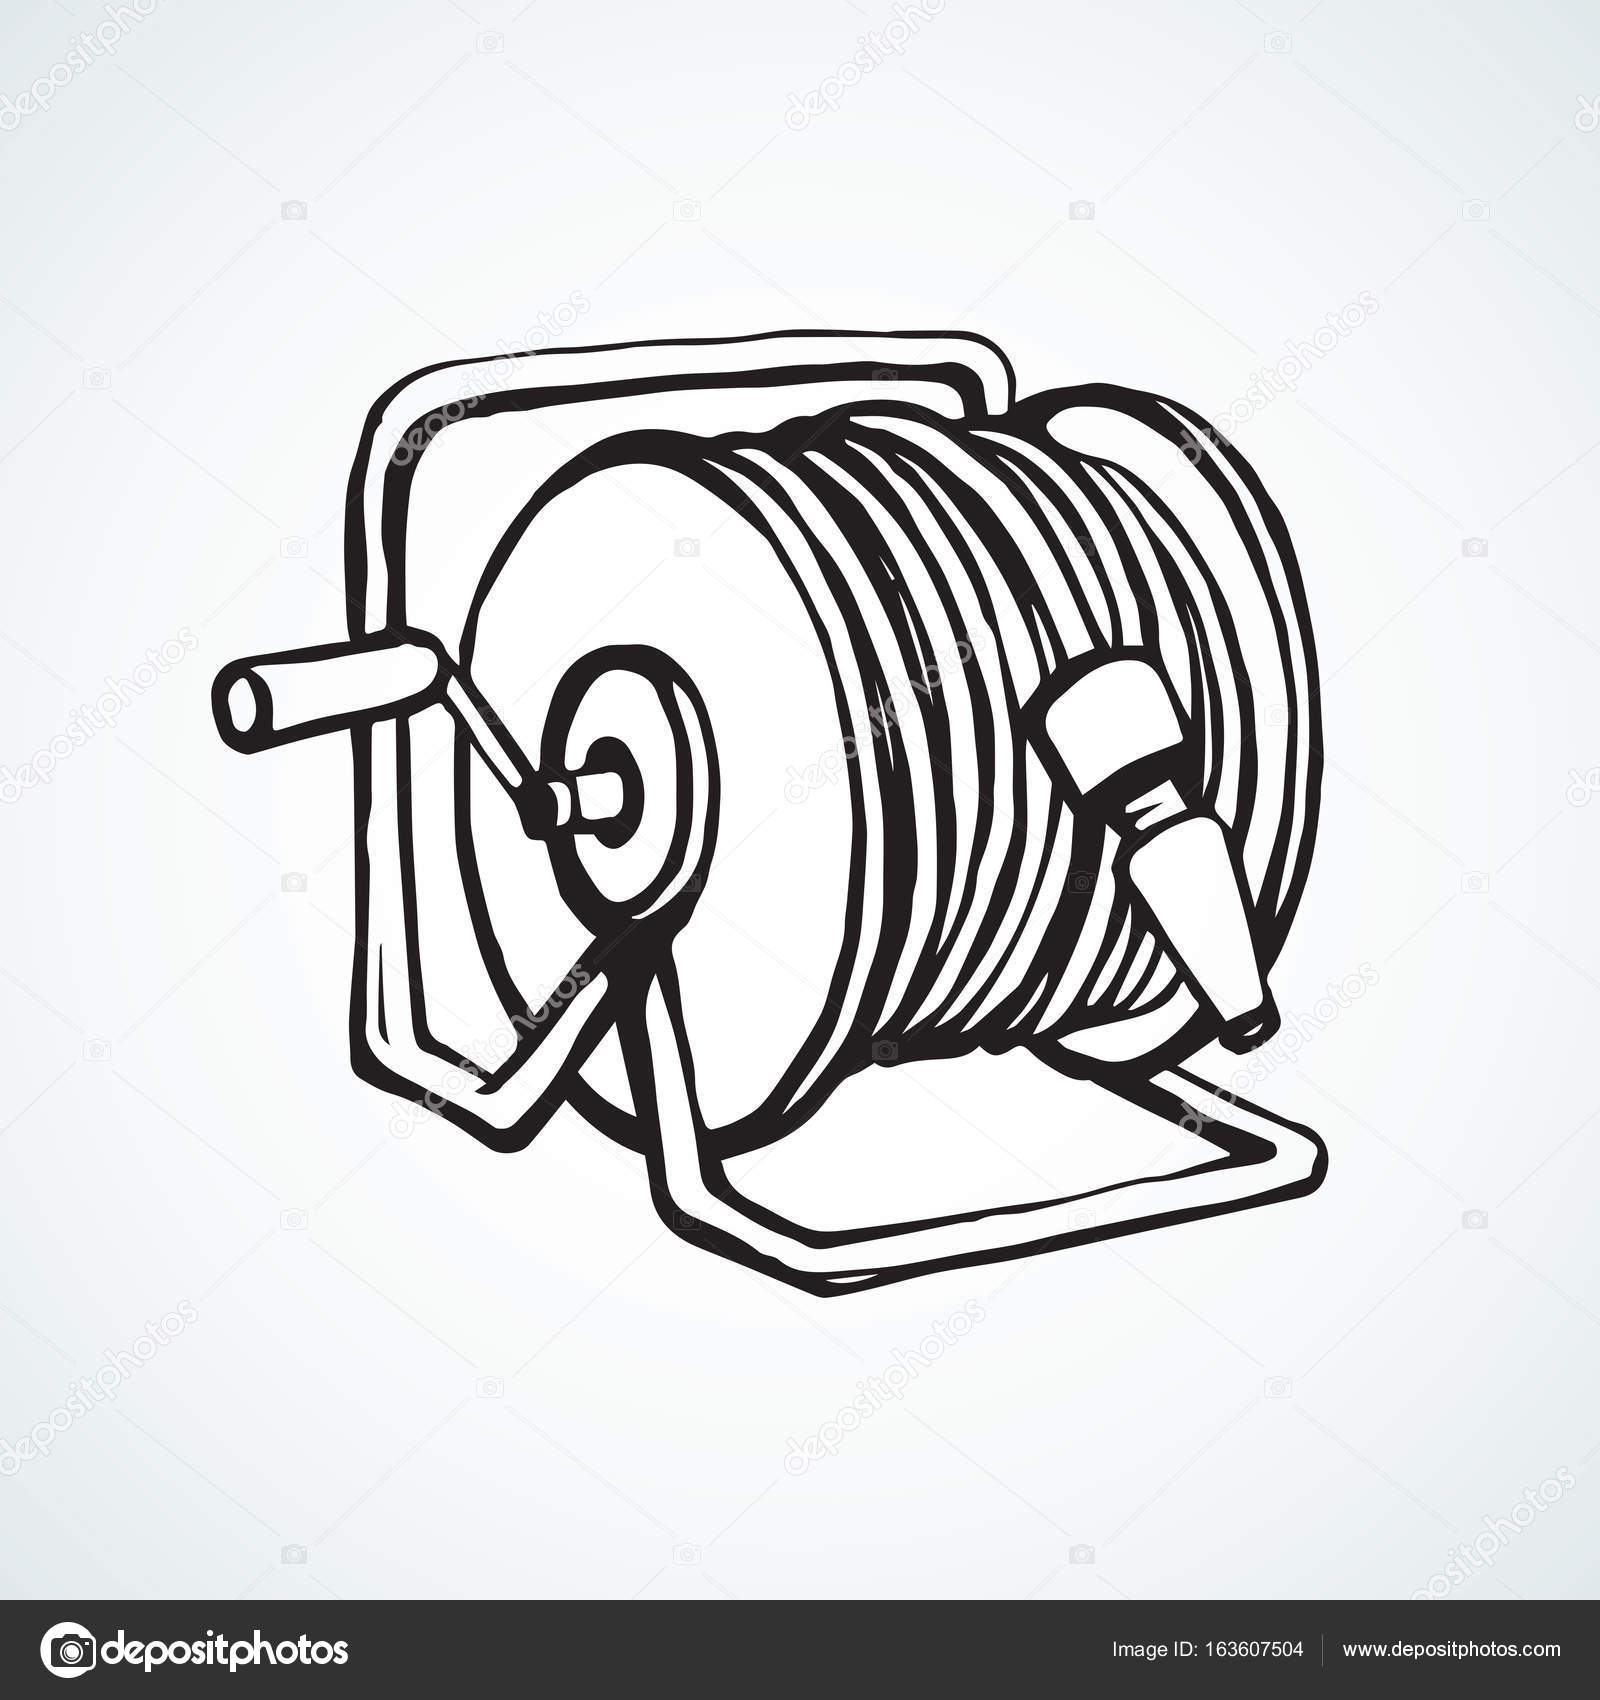 Hose Drawing At Free For Personal Use Iron Man Suit Diagram Images Pictures Becuo 1600x1700 Roll The Vector Stock Marinka